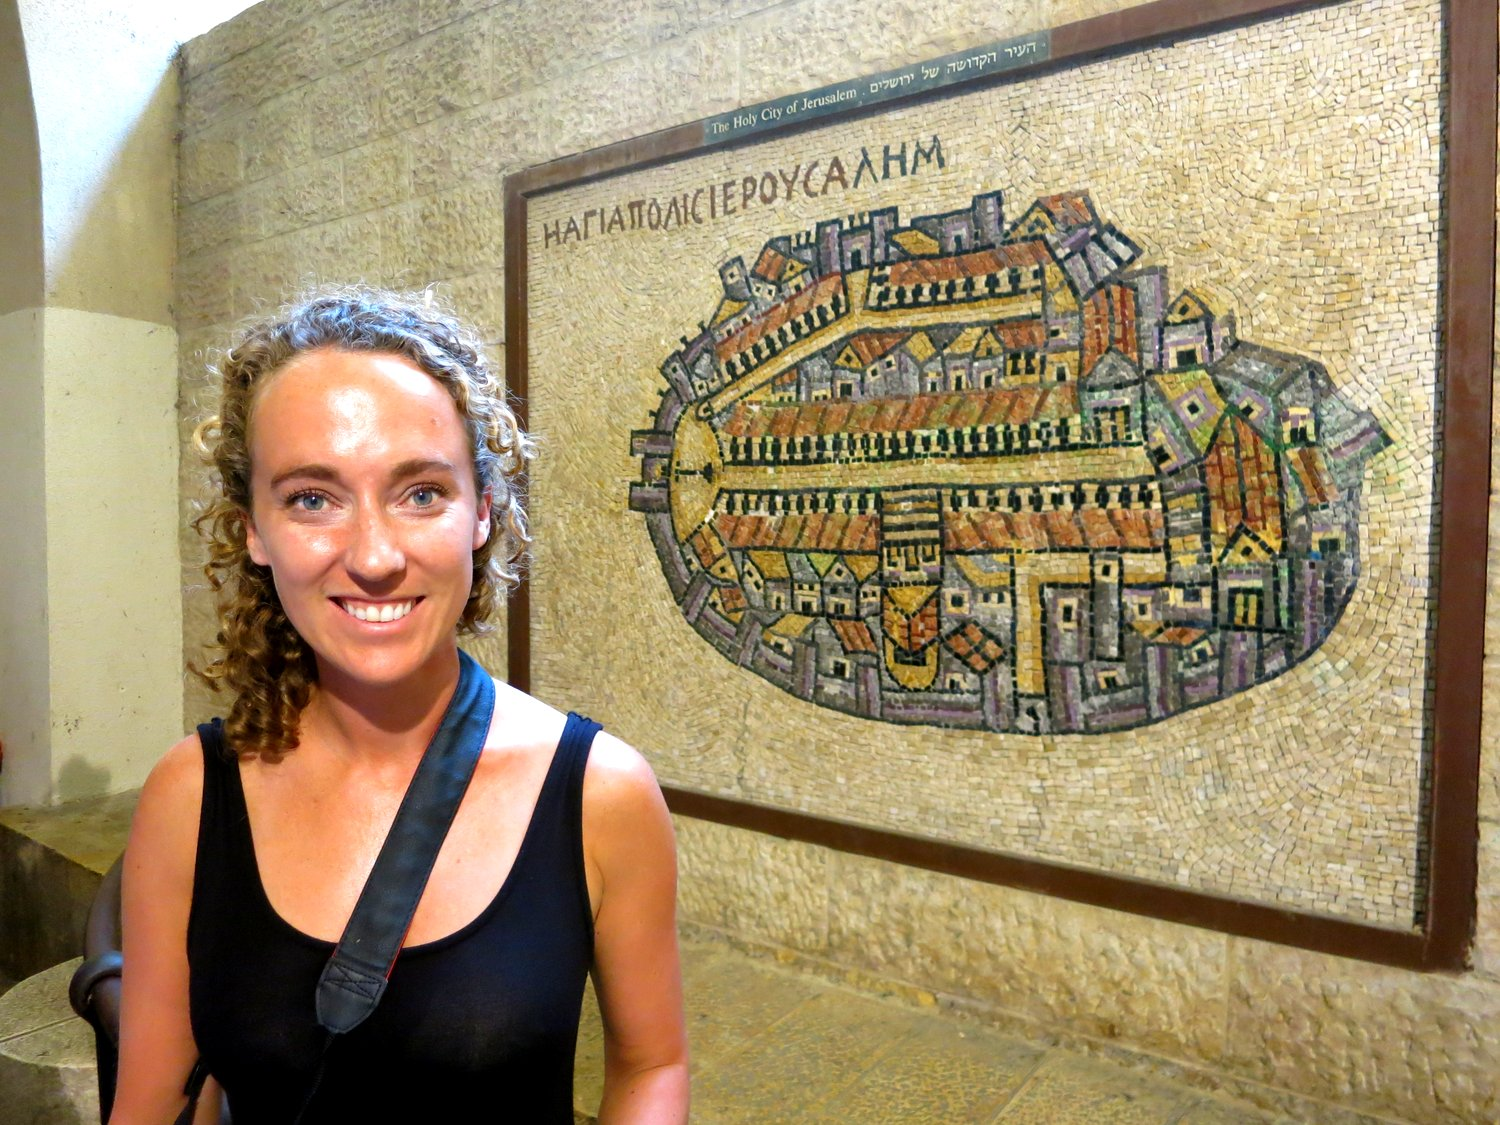 A replica of the ancient mosaic map of Jerusalem that we saw in  Madaba.